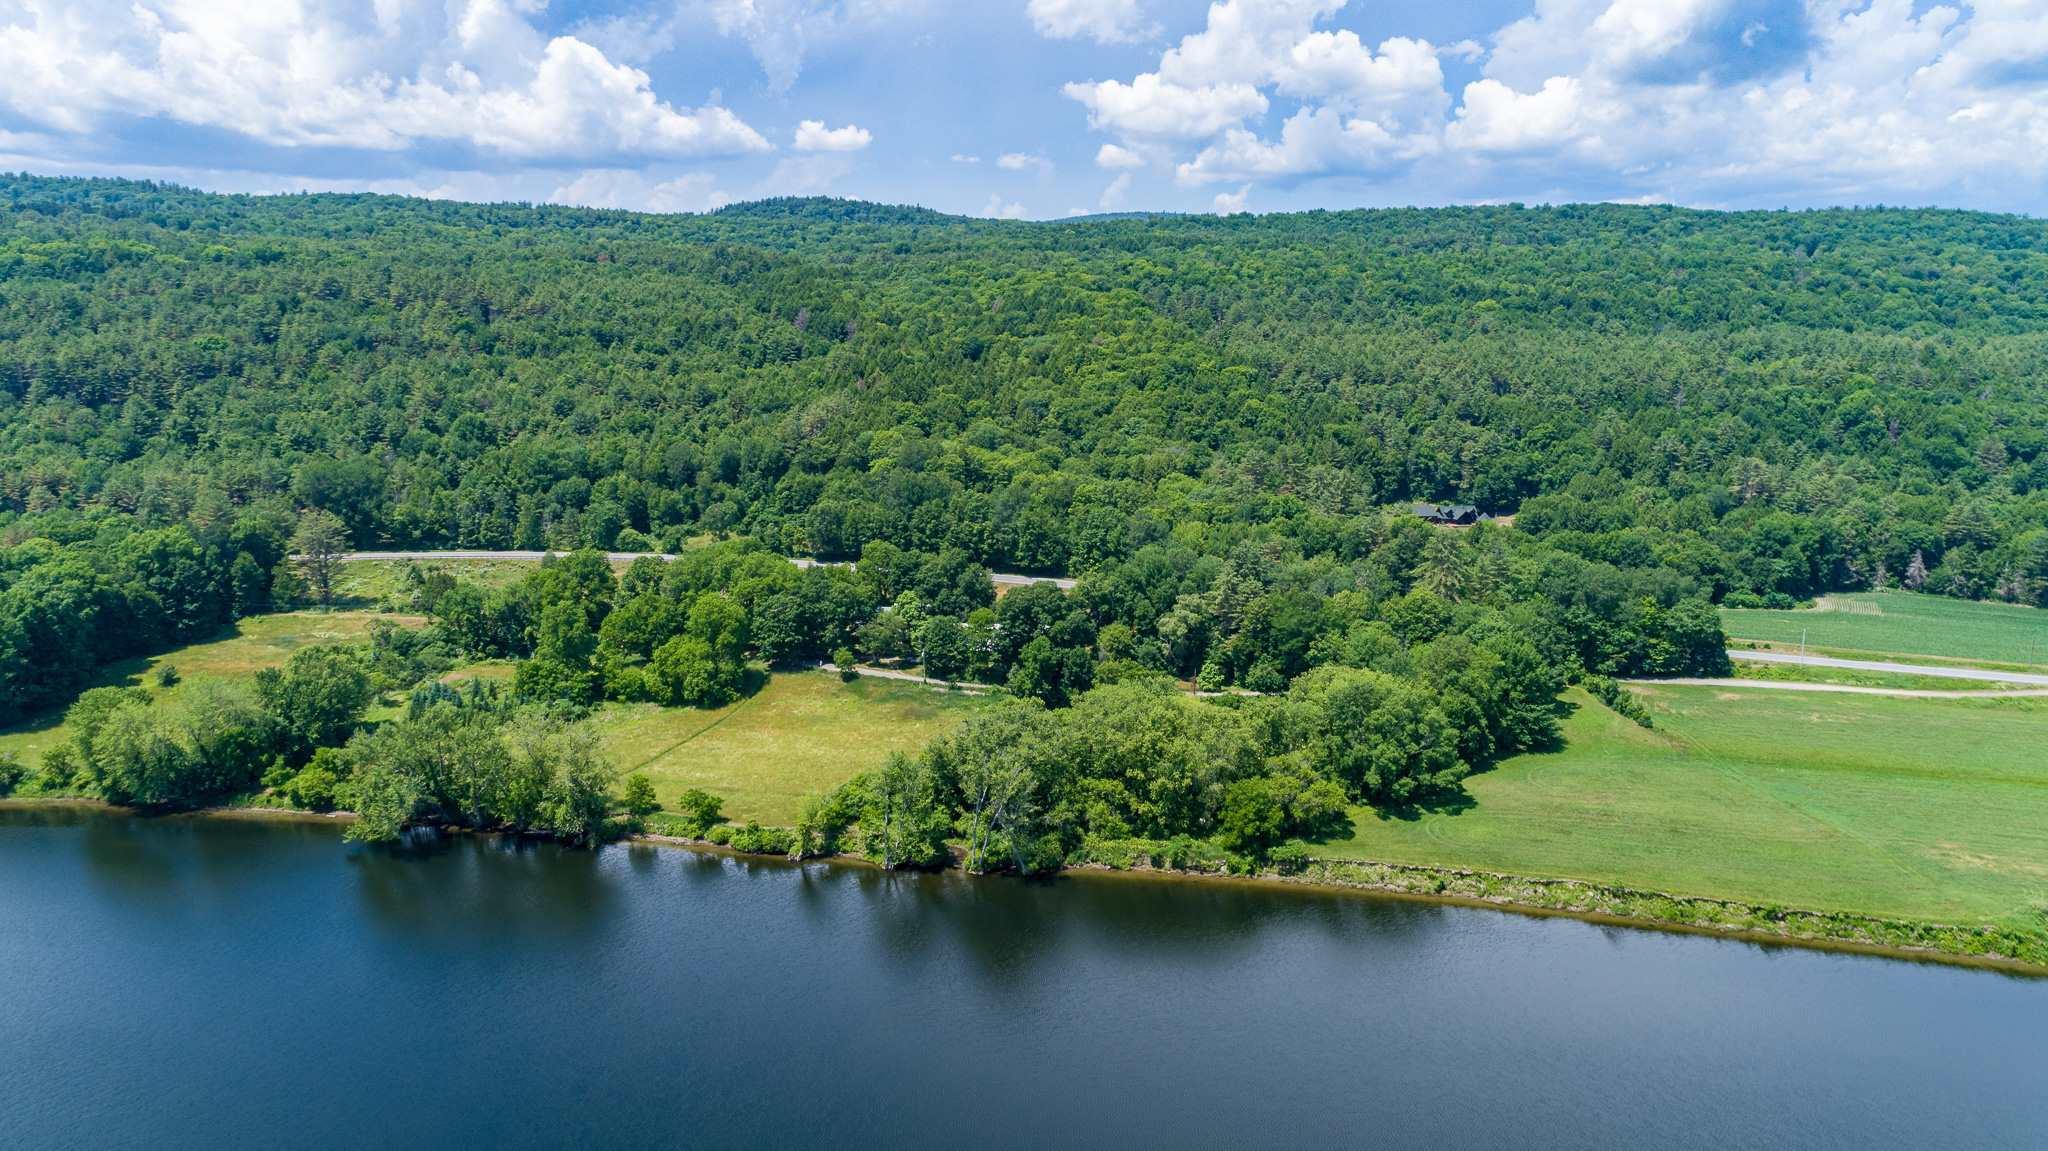 Showing southern field on River--another housesite subdivision potential?